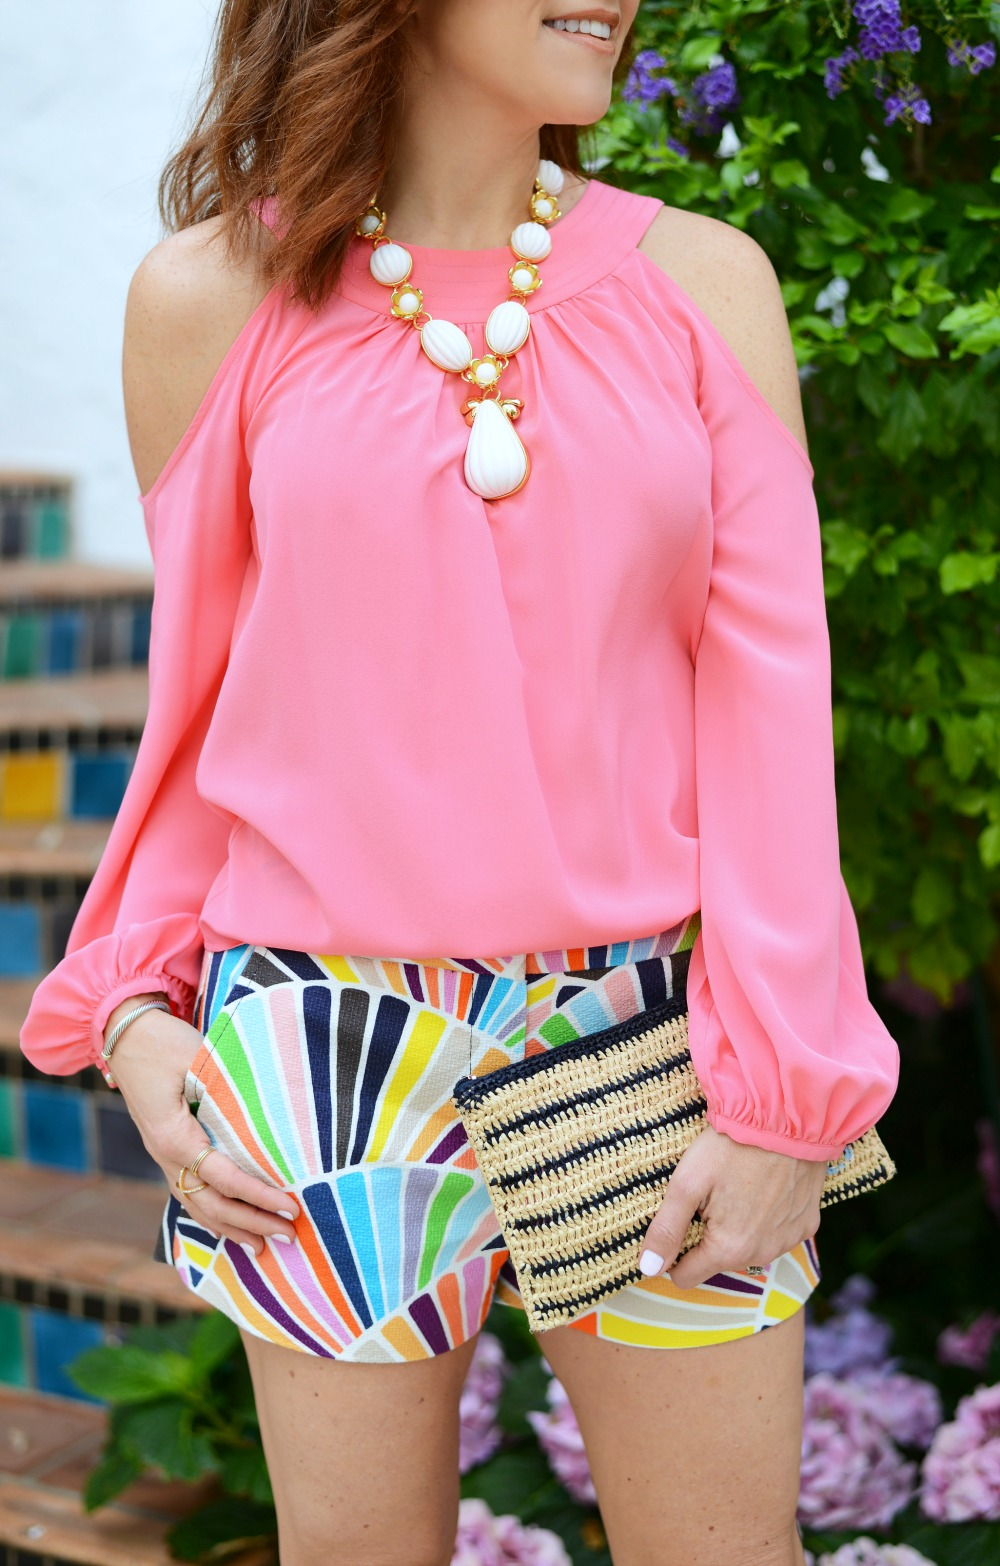 A fun way to style shorts for spring (on a real 30-something mom!) // the modern savvy, a life and style blog